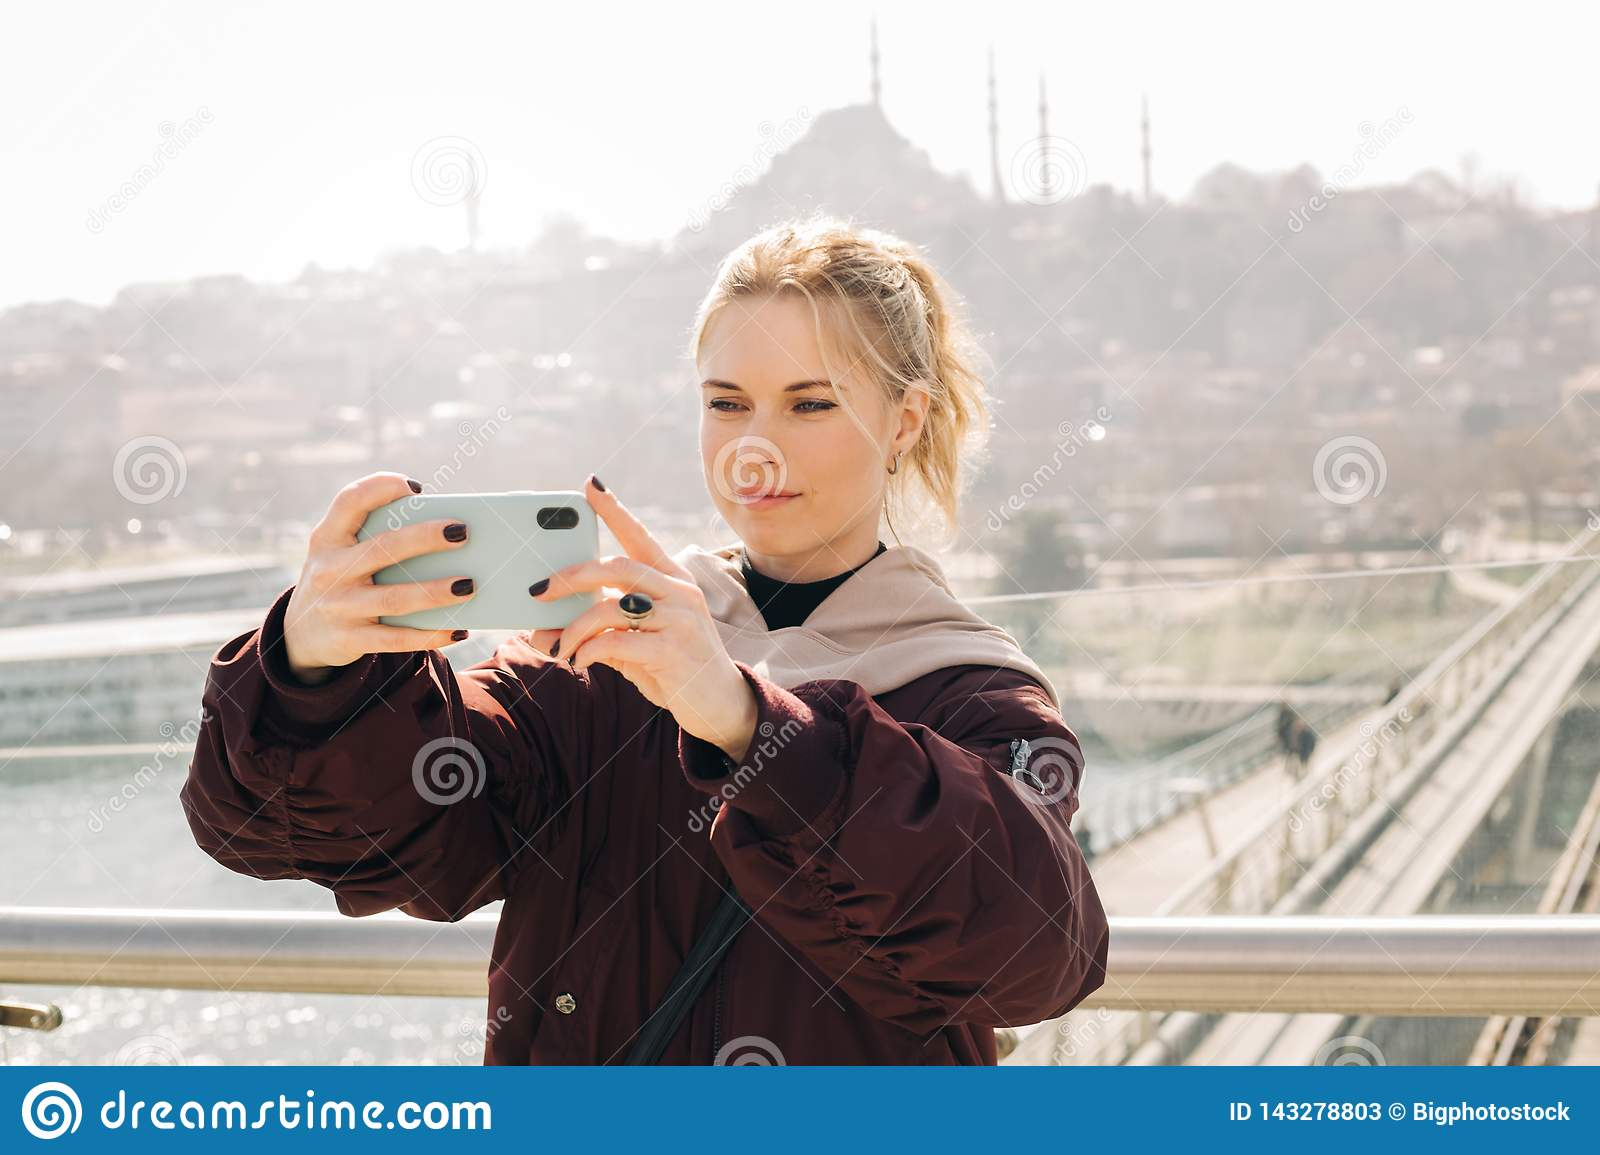 Young blonde woman in jacket makes selfie against background of glass window.